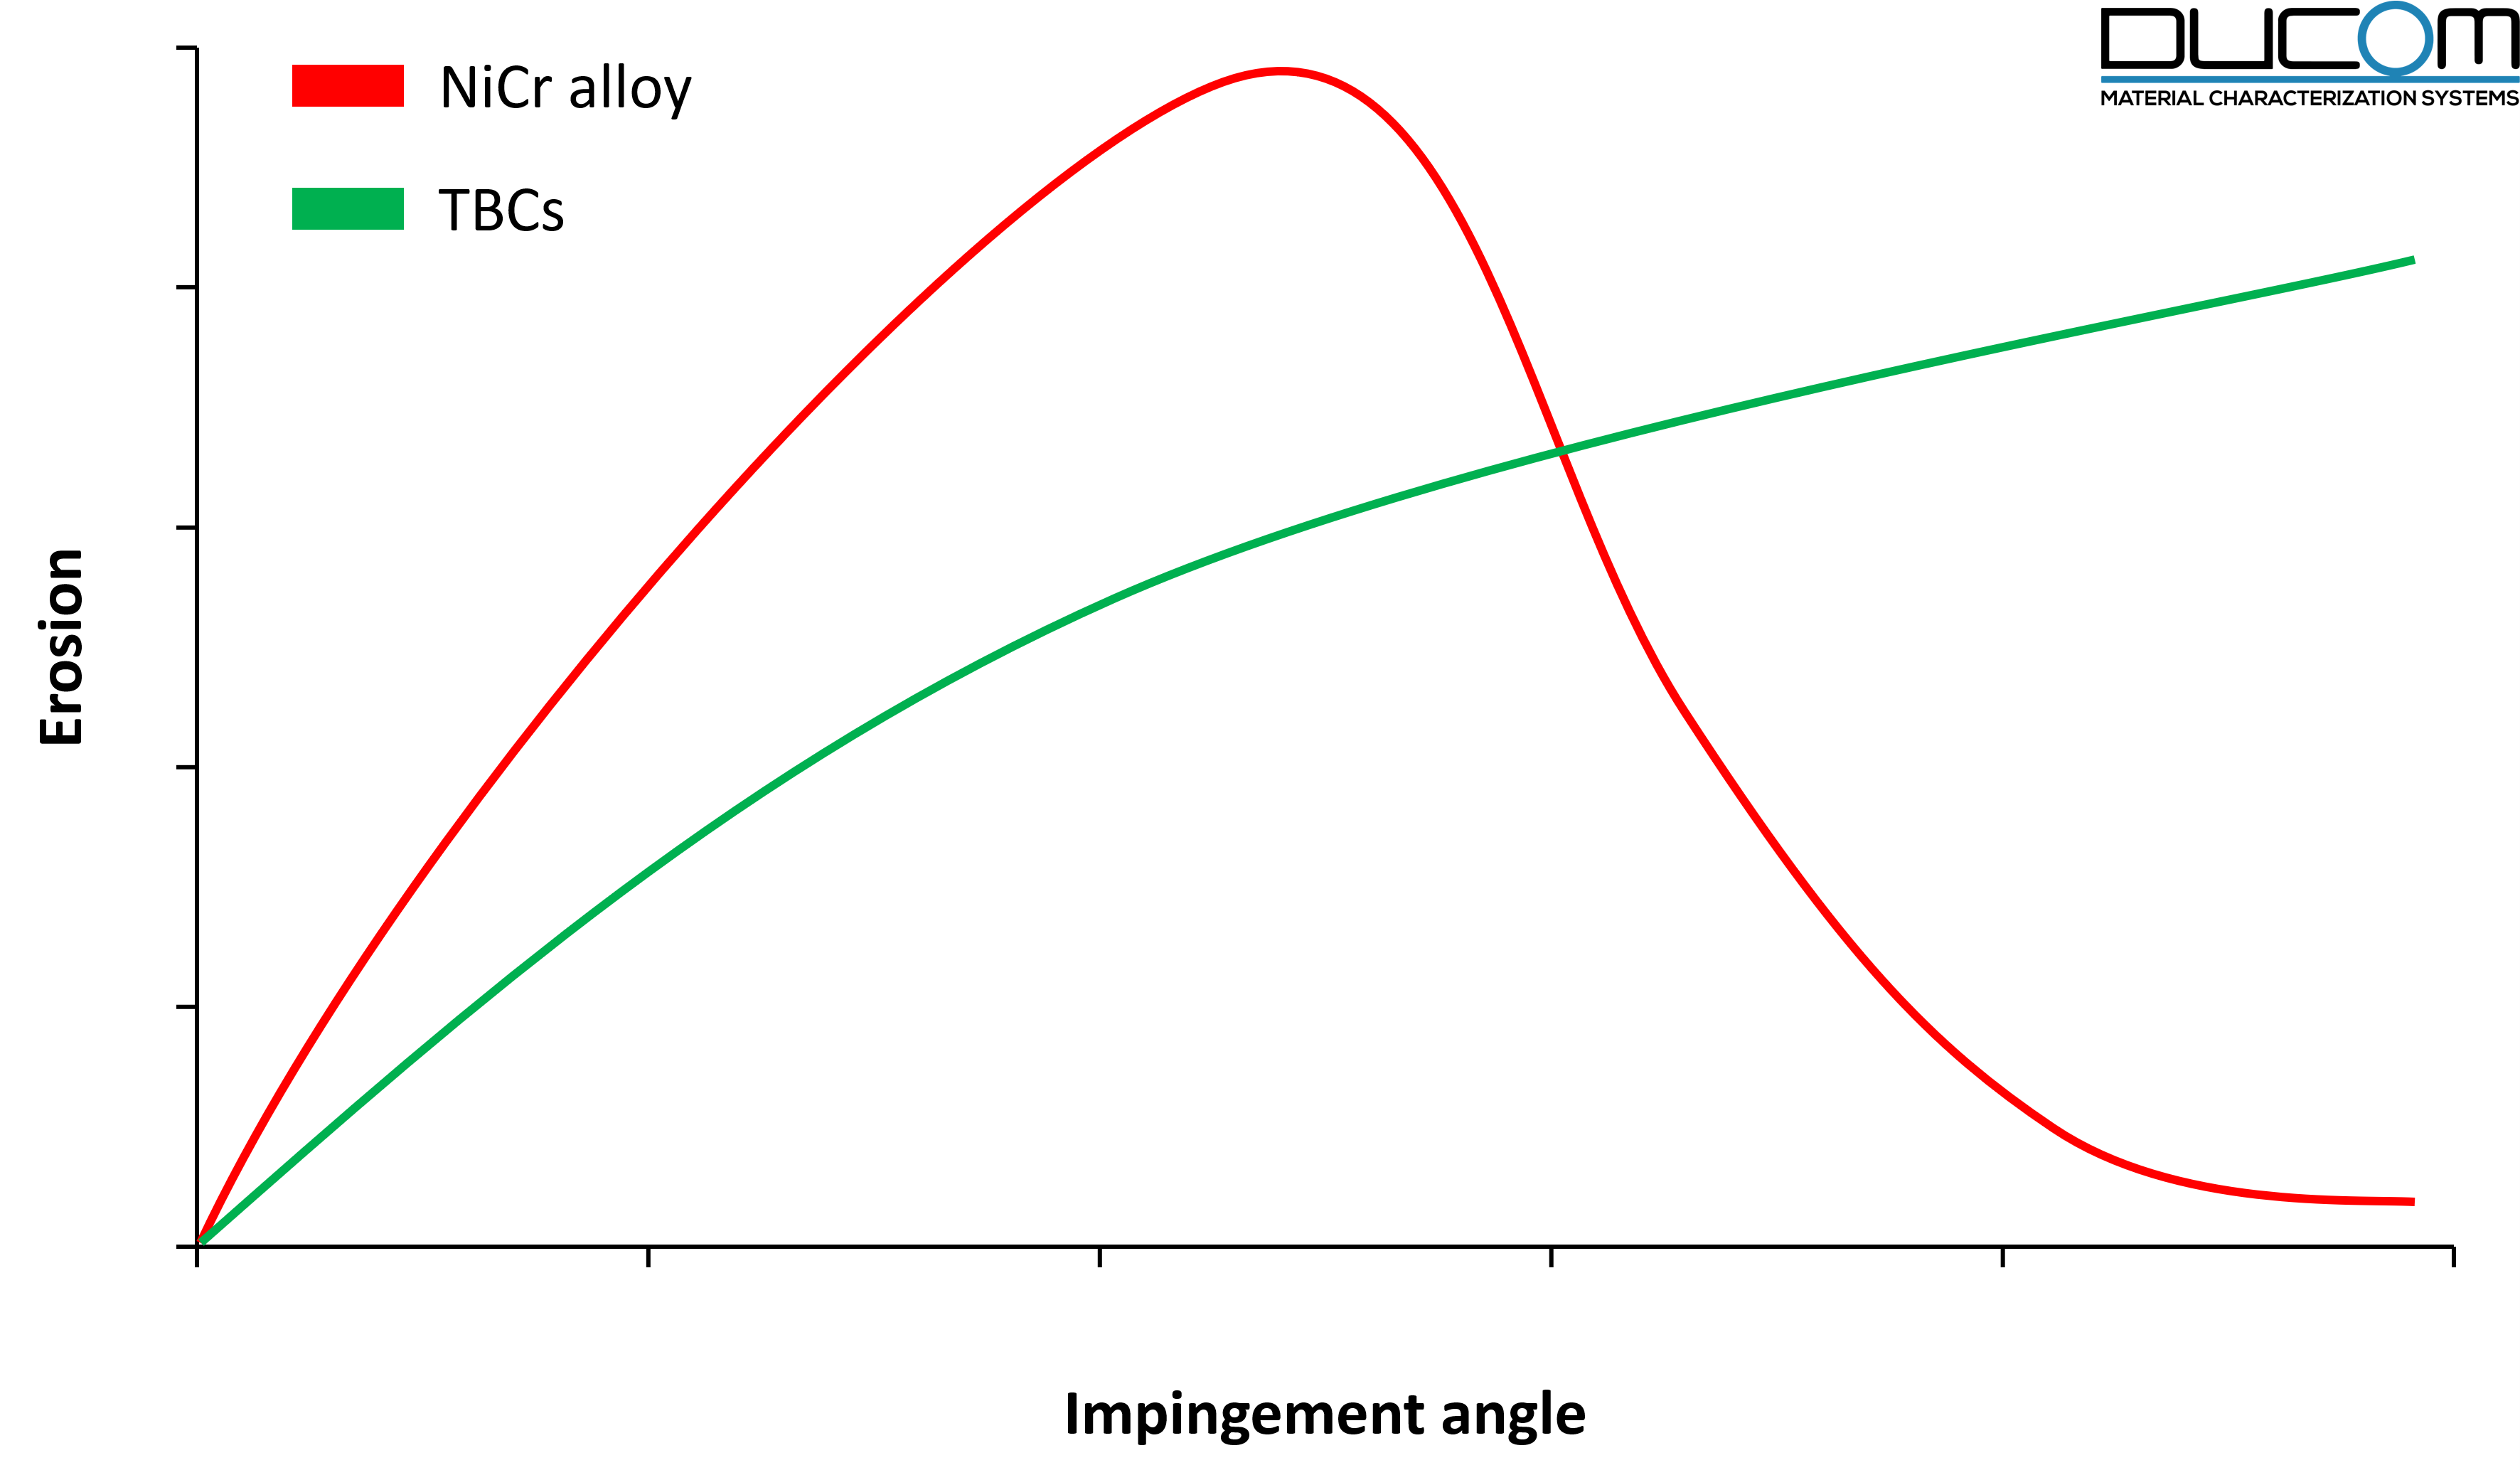 Erosion of TBCs with respect to impingement angle